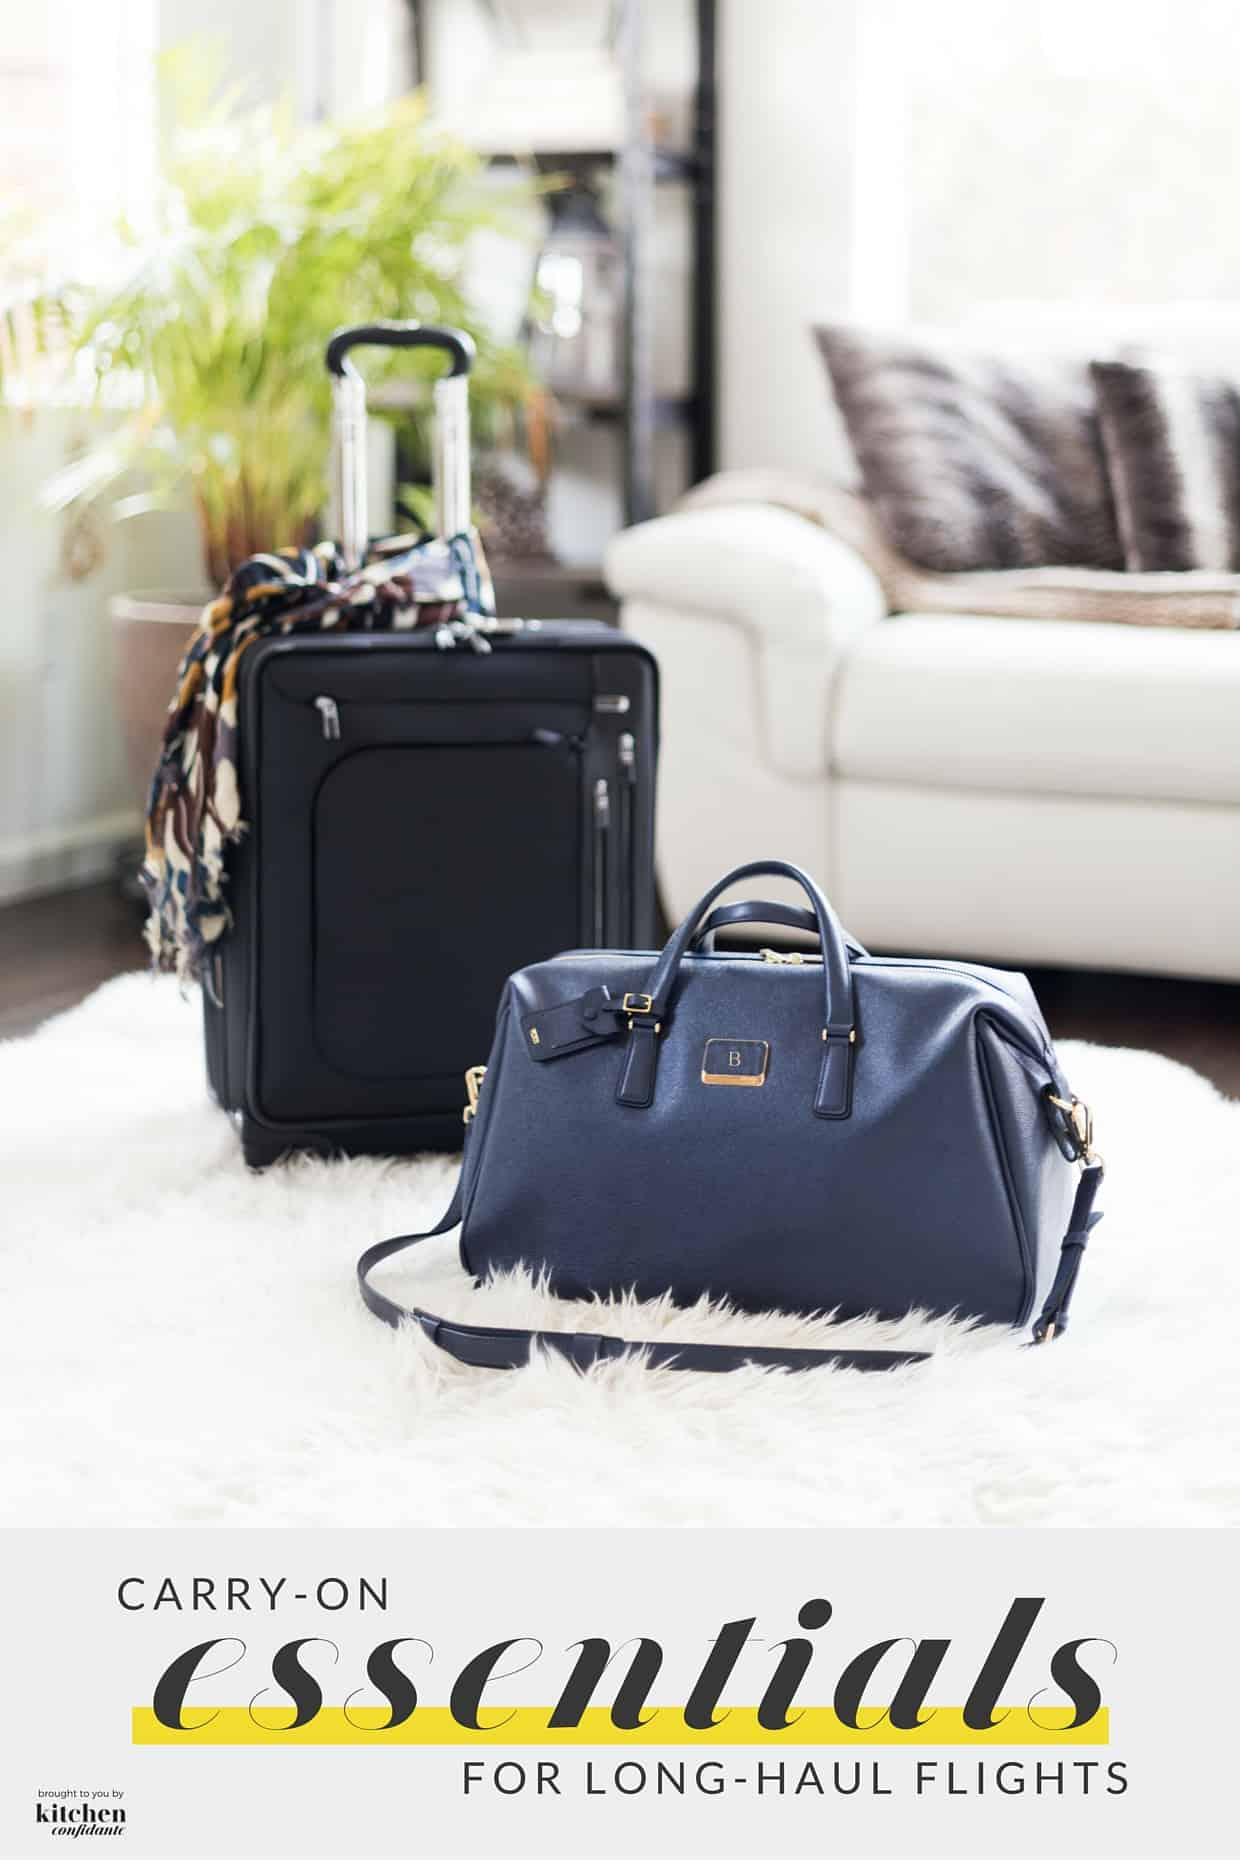 Carry-On Essentials for Long-Haul Flights - don't leave home without packing these must-have items - they will make your long-haul flight so much more enjoyable so you can arrive fresh and relaxed at your destination!